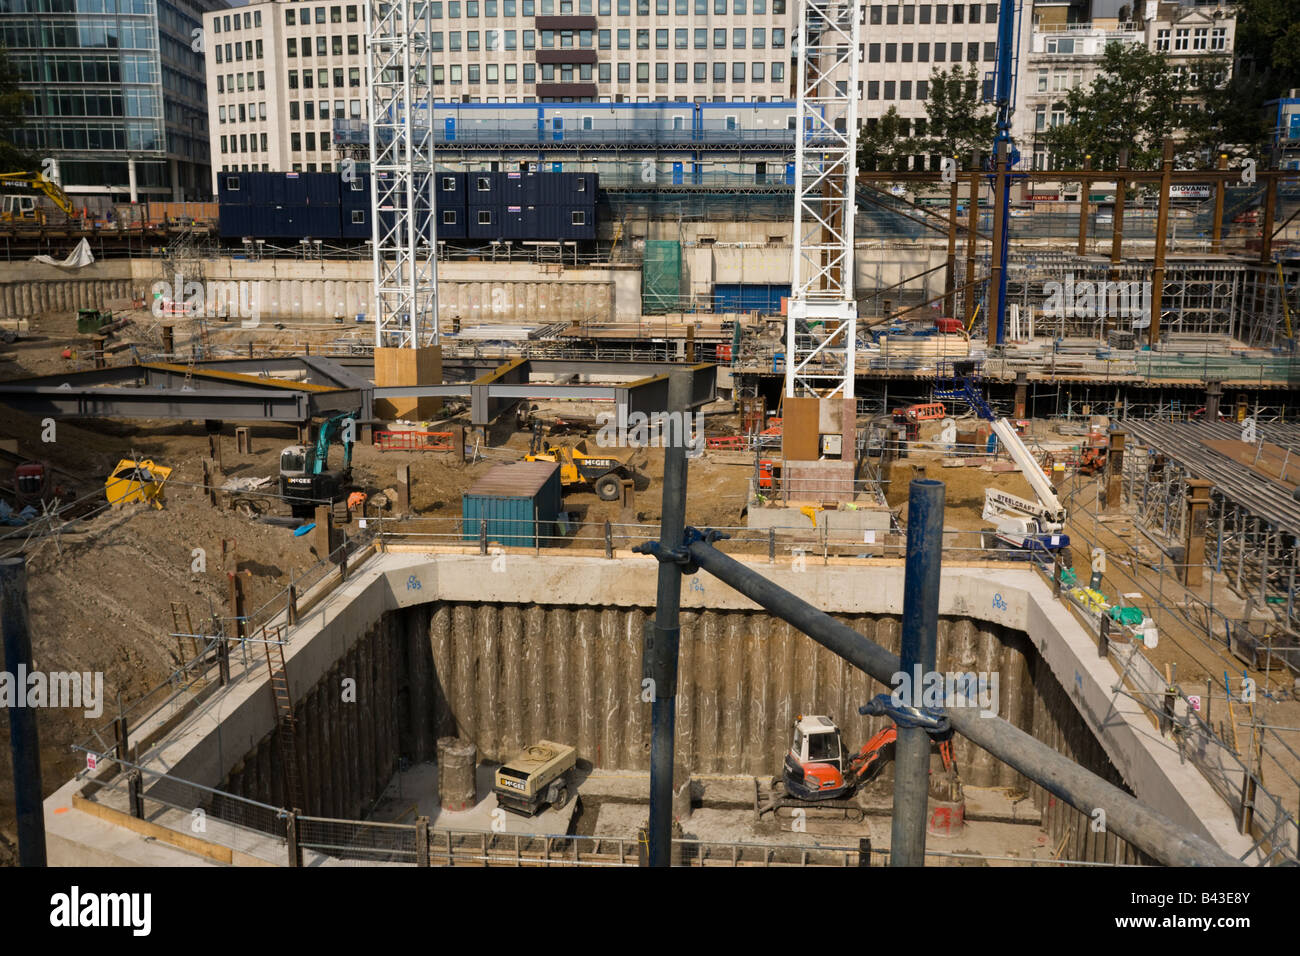 deep foundations to construct buildings Typically, the foundation requirements are determined on a site by site basis in conjunction with a geotechnical engineer a structural engineer will be able to provide loads from the building to the ground and the geotechnical engineer will recommend a suitable foundation system there are two common foundation types, deep and shallow.